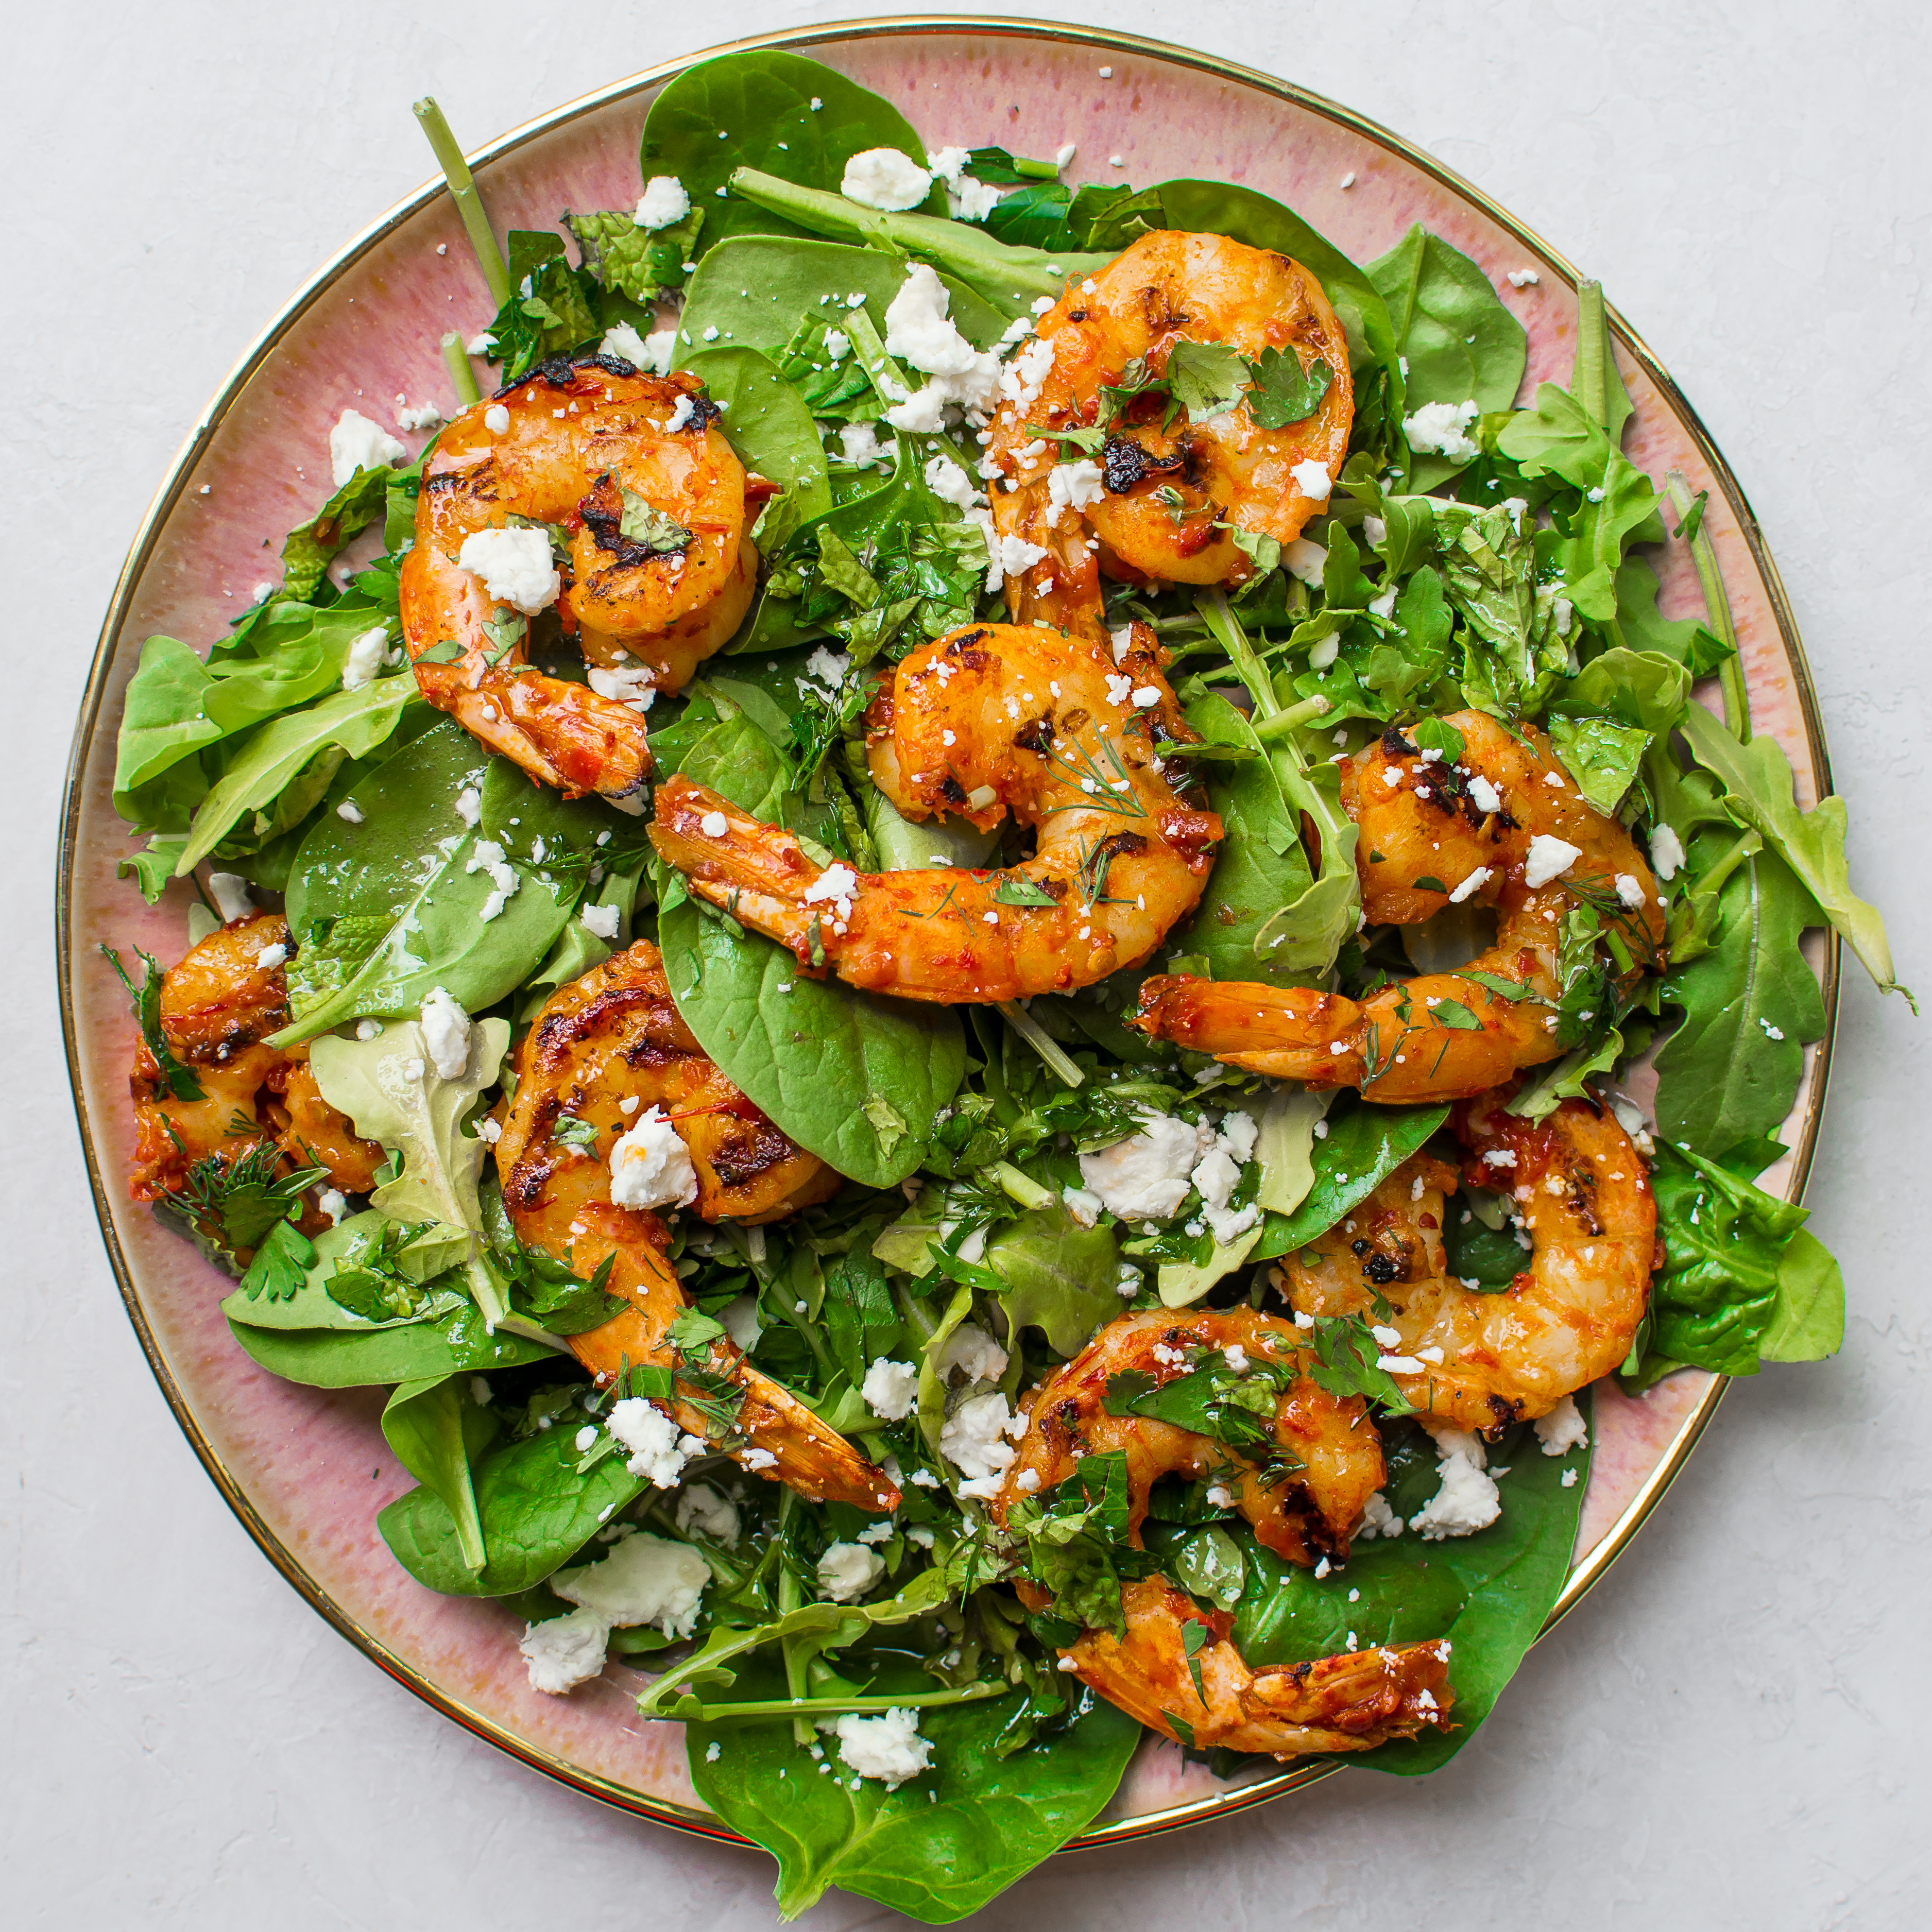 Cold Harissa Shrimp Salad With Herbs And Goat Cheese